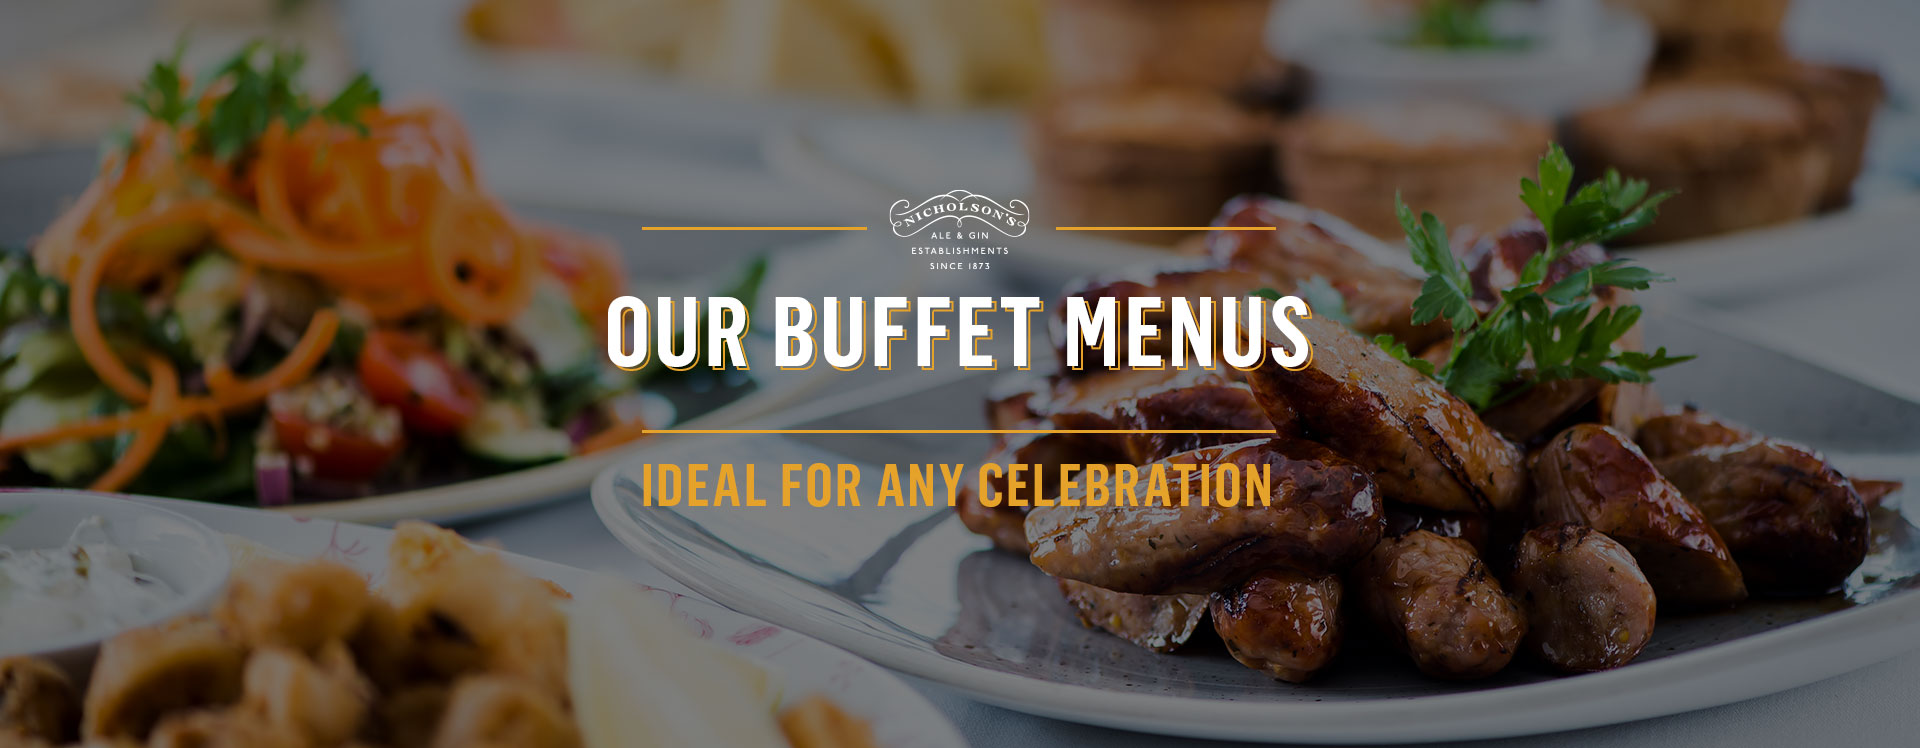 Buffet menu at Doggett's Coat and Badge - Book a table